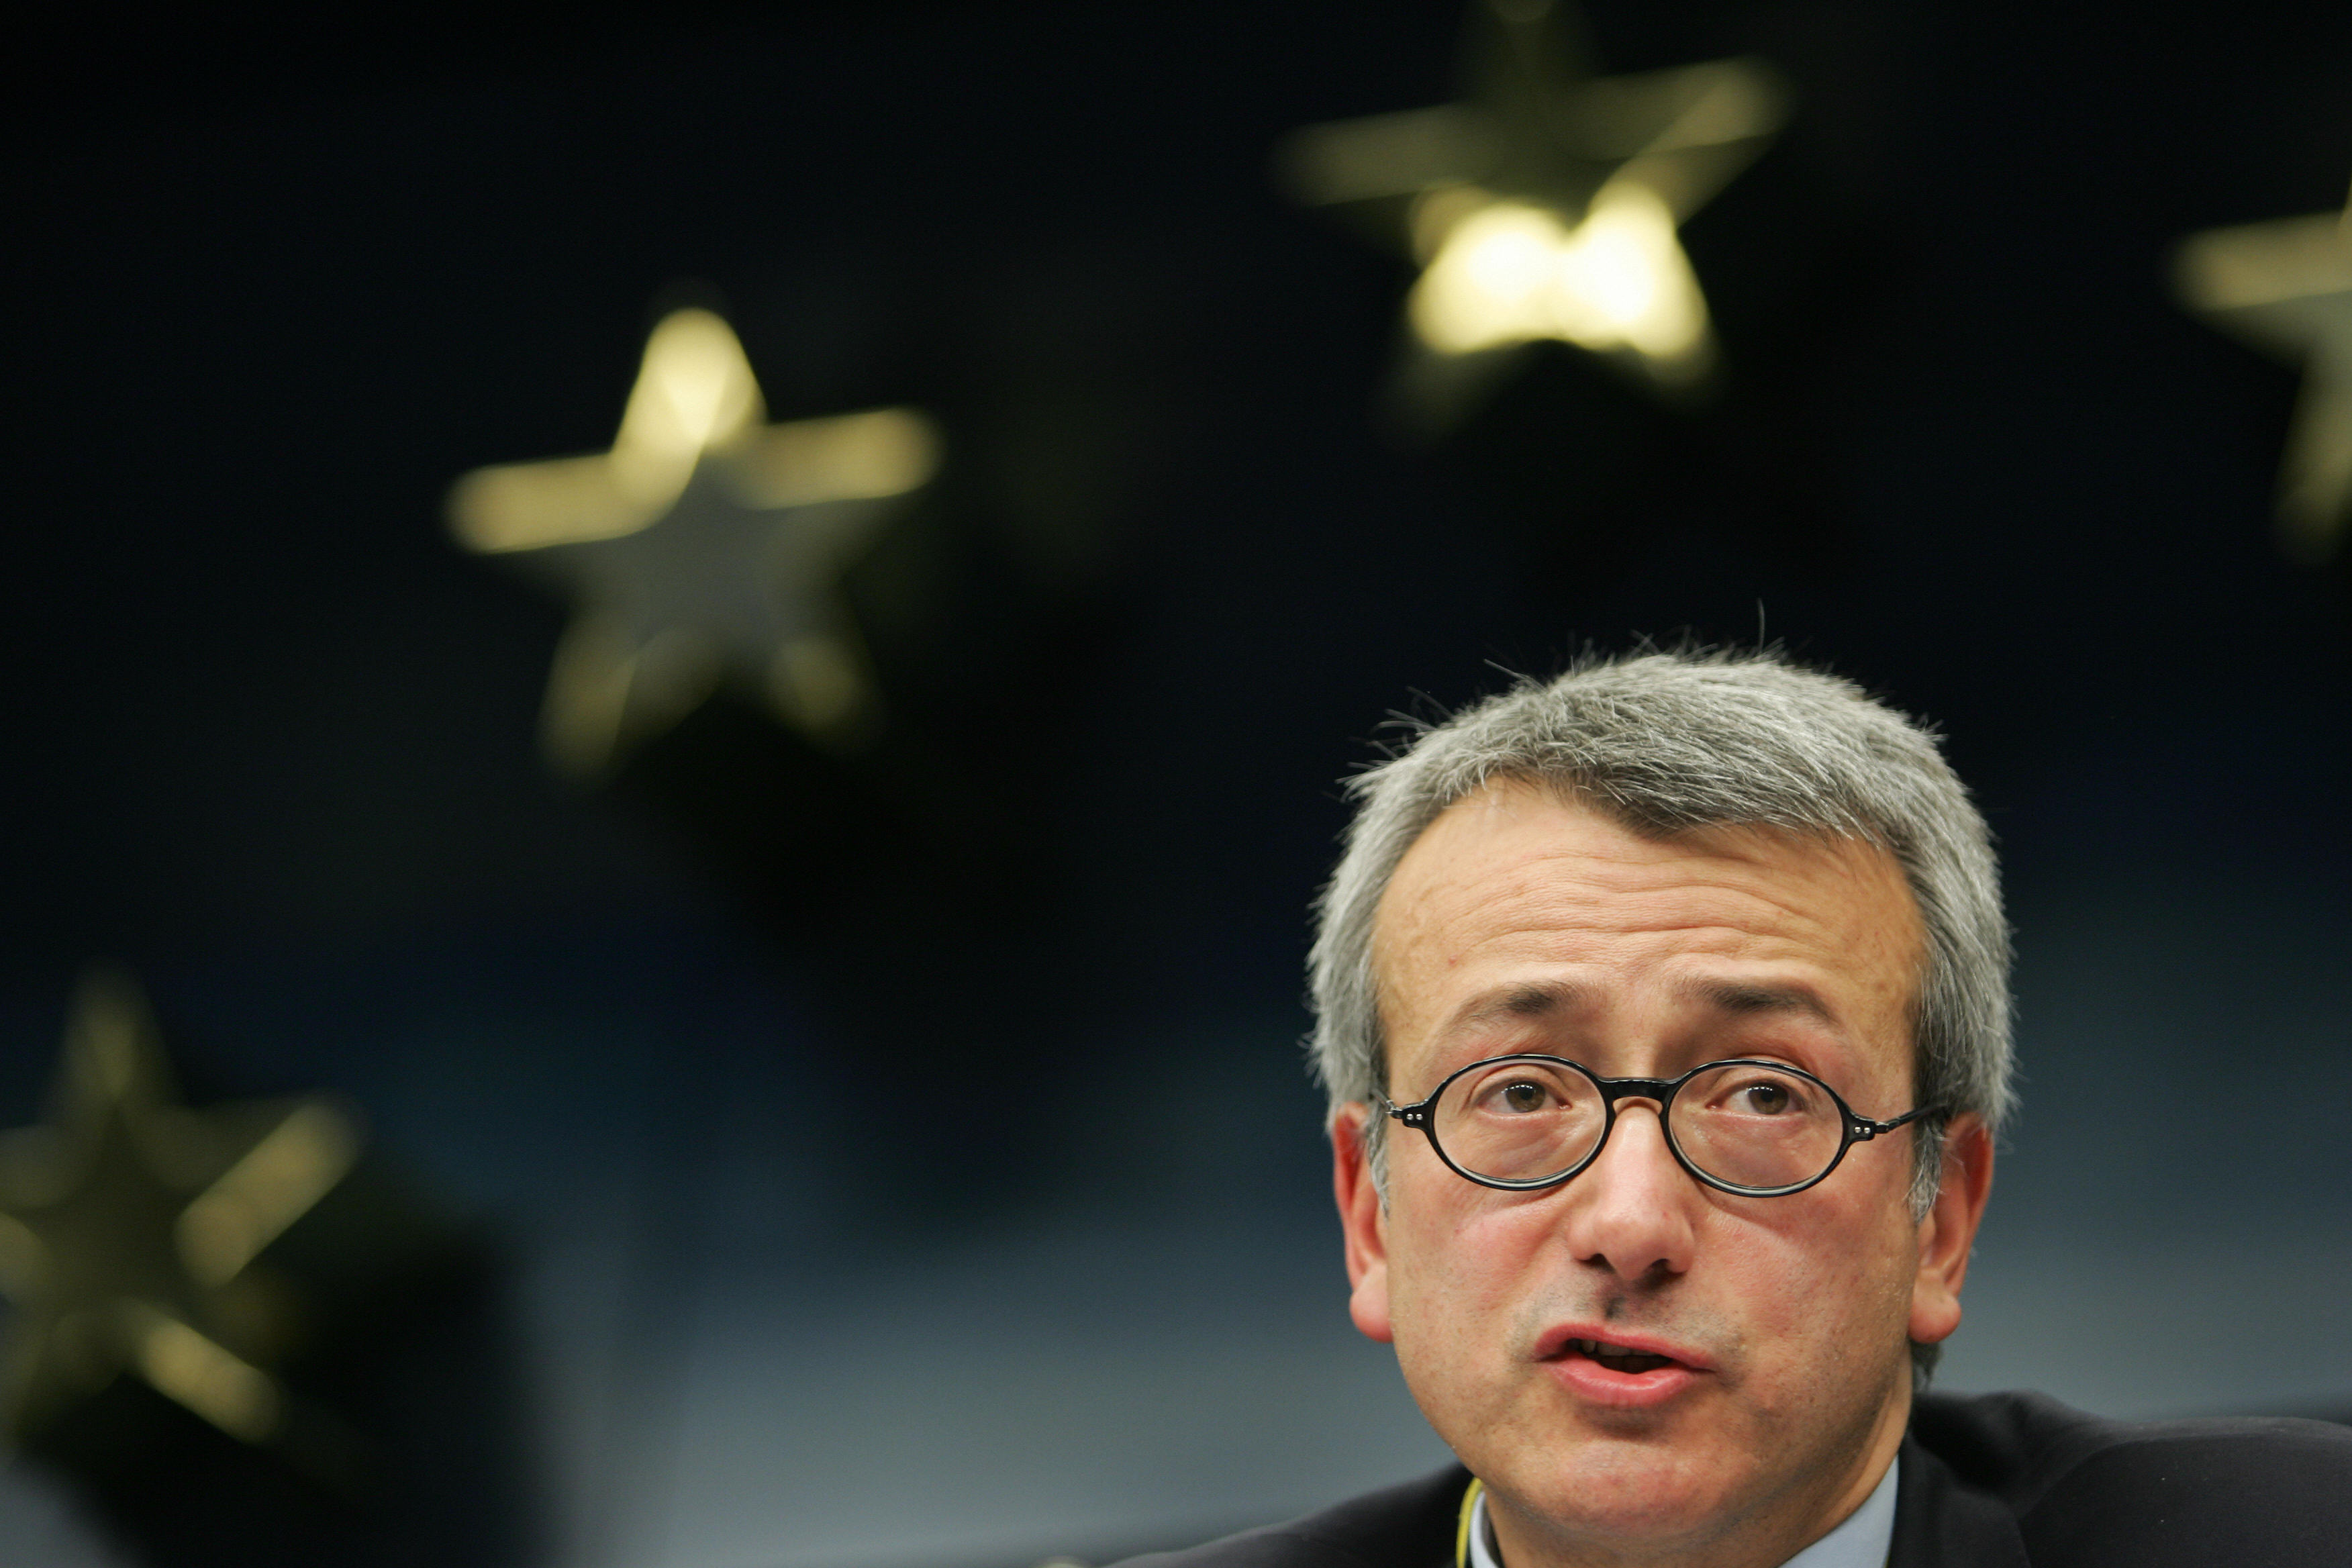 Pedro Serrano is a diplomat with the EU's European External Action Service. (John Thys/AFP via Getty Images)